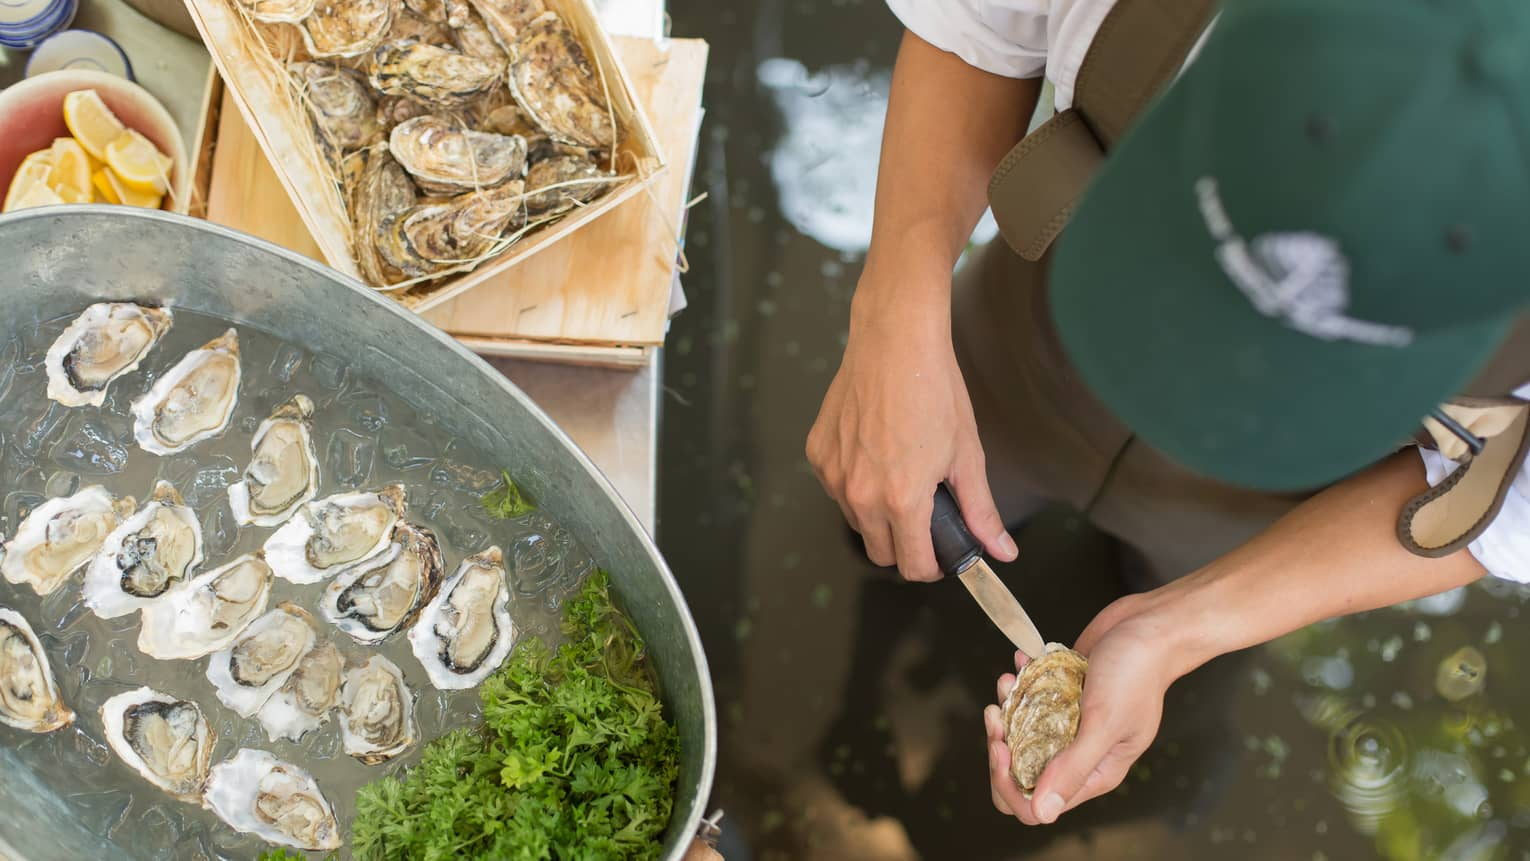 Aerial view of chef shucking oyster in front of steel tub with half shell oysters on ice